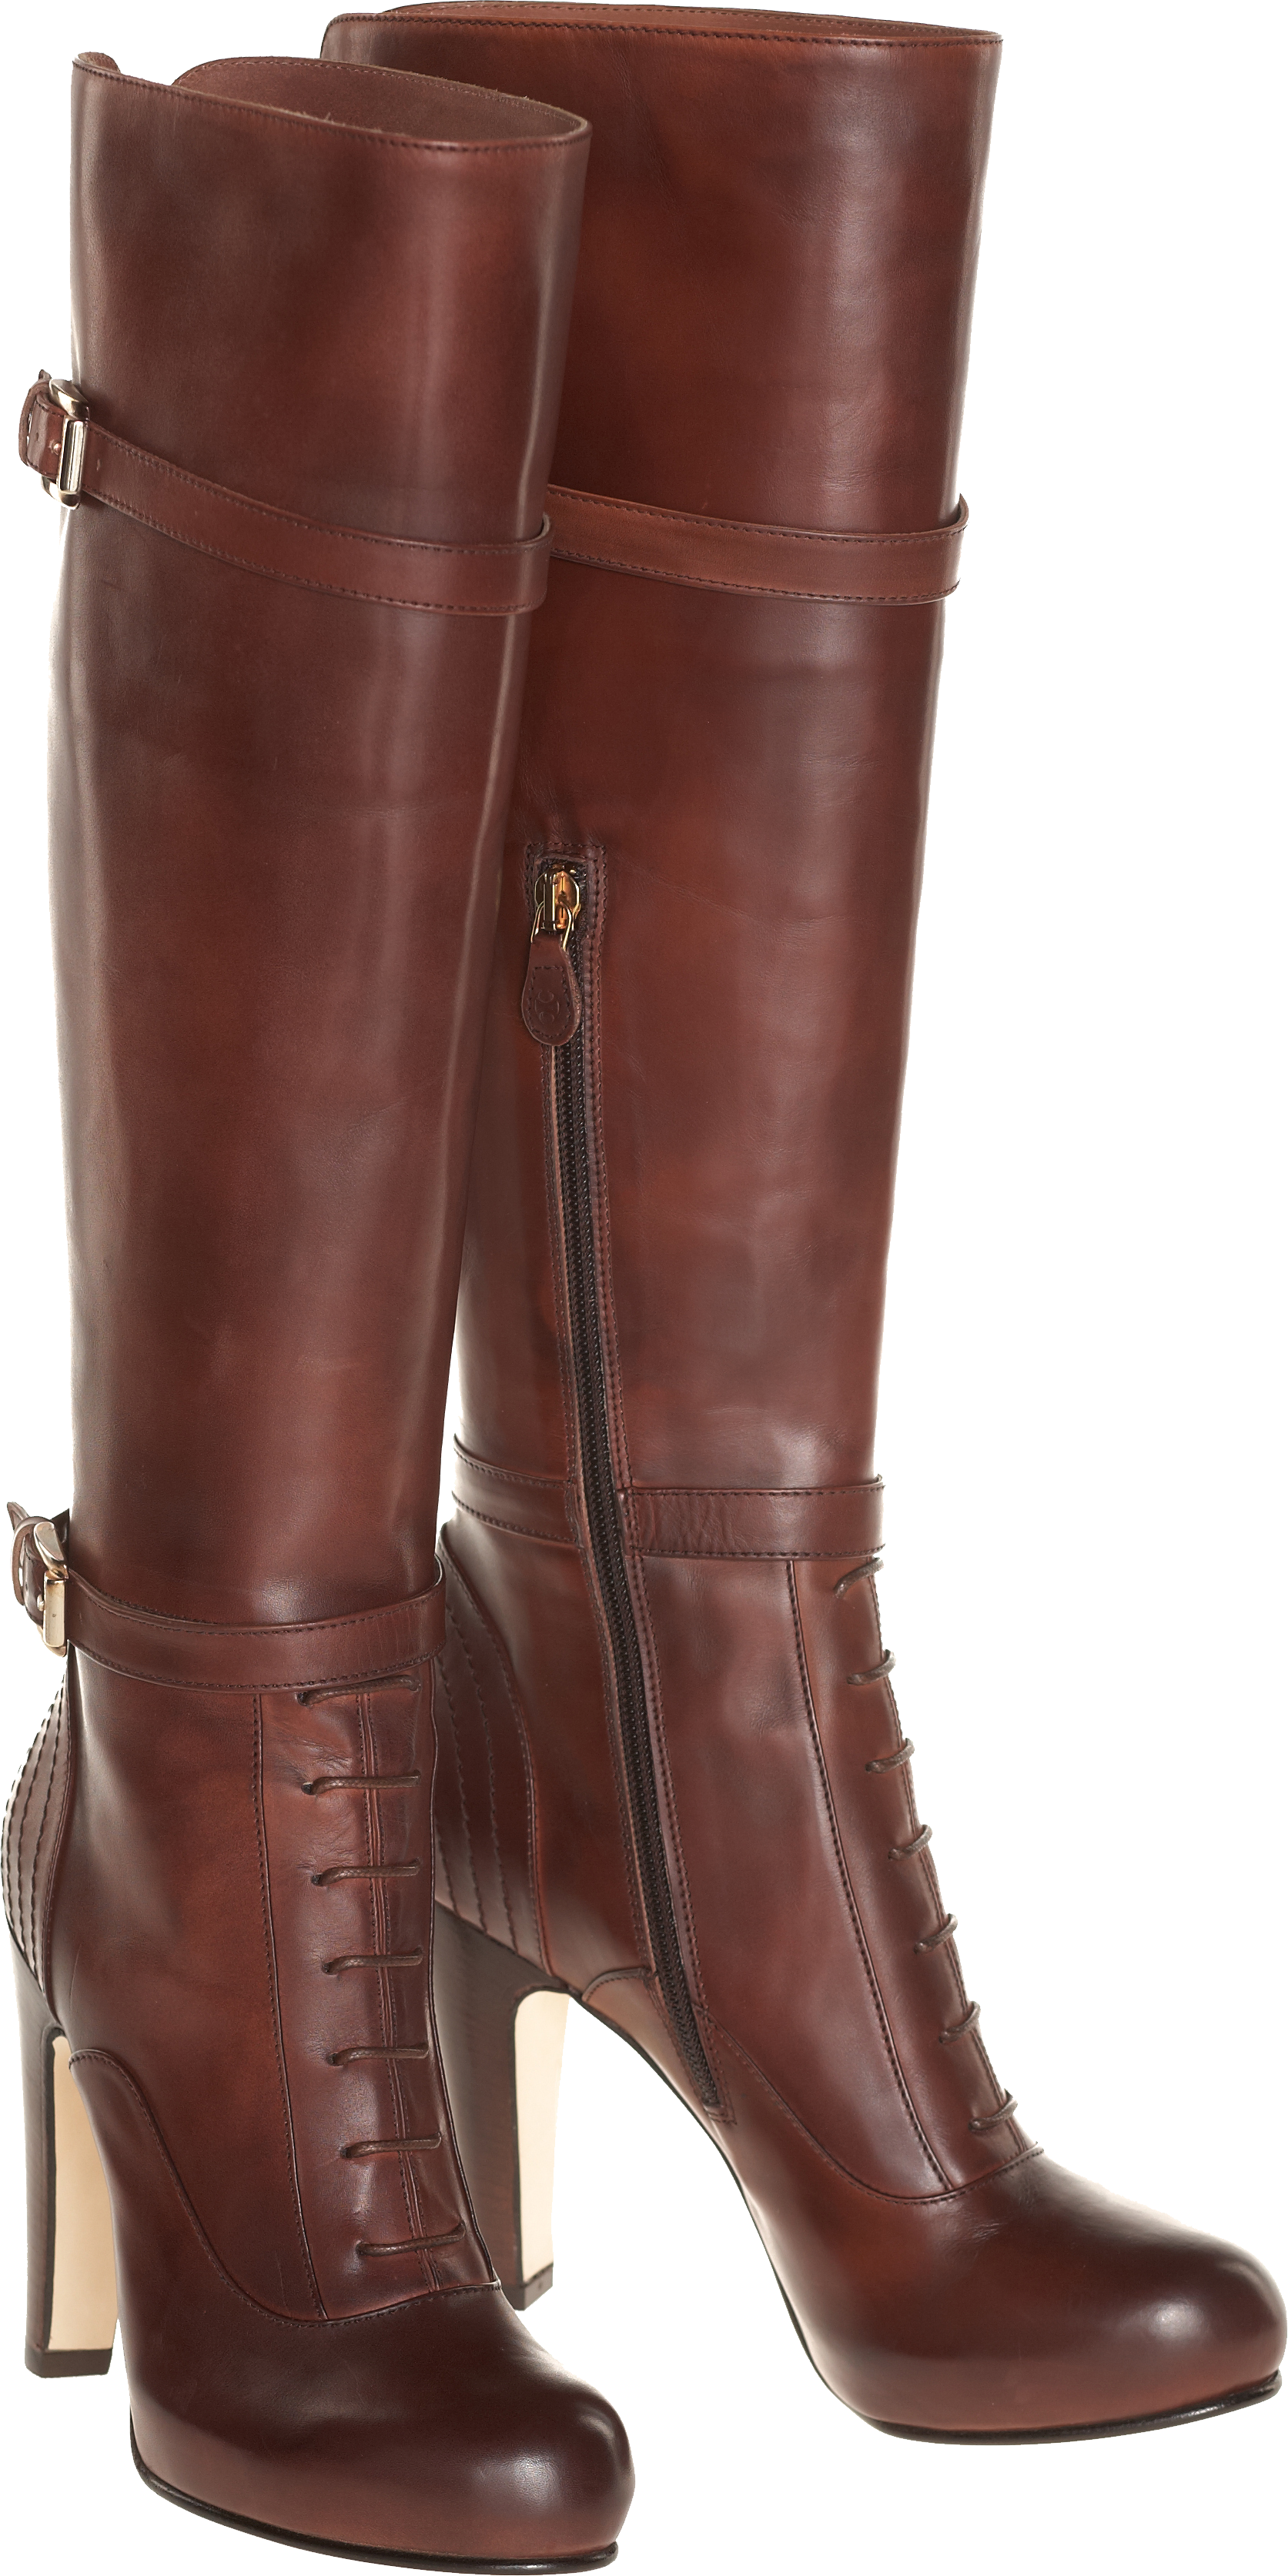 Women boots PNG image